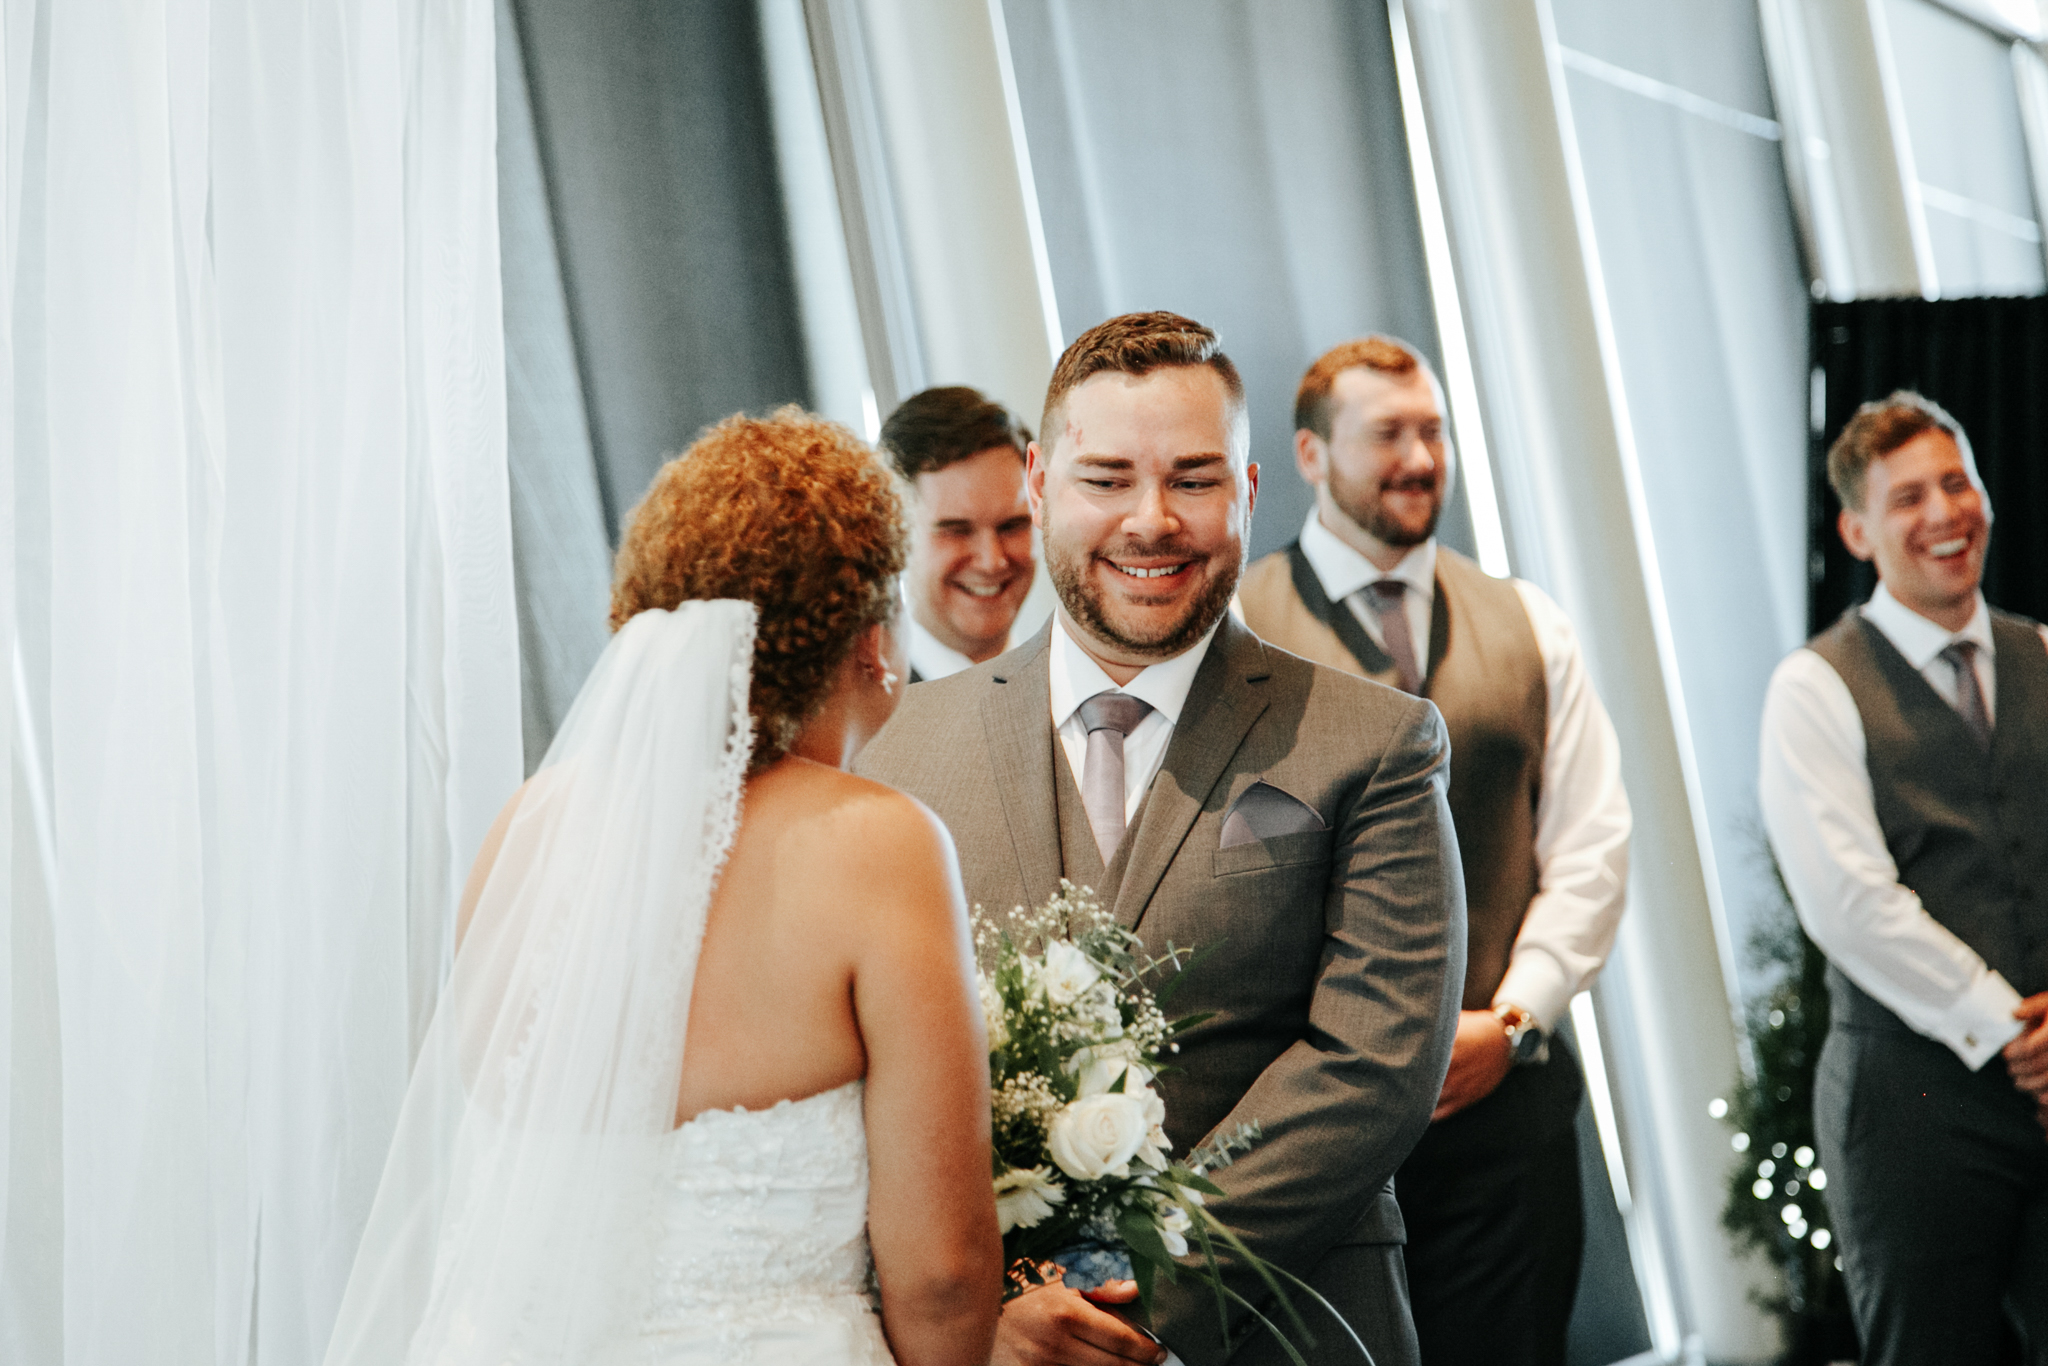 lethbridge-wedding-photographer-love-and-be-loved-photography-trent-danielle-galt-reception-picture-image-photo-48.jpg